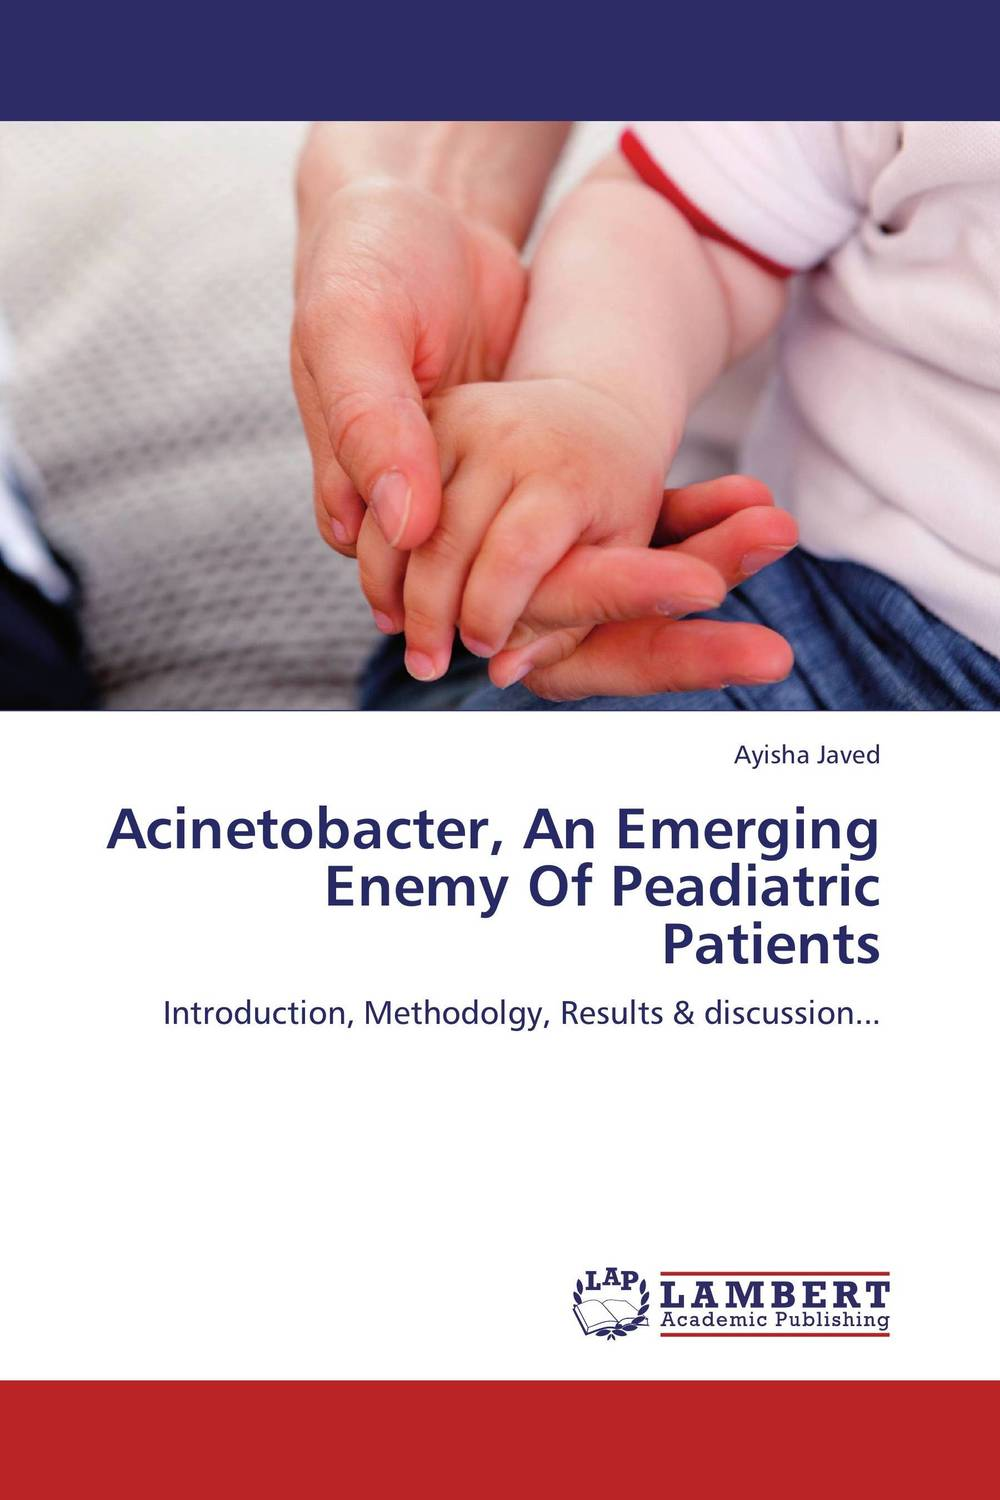 Acinetobacter, An Emerging Enemy Of Peadiatric Patients